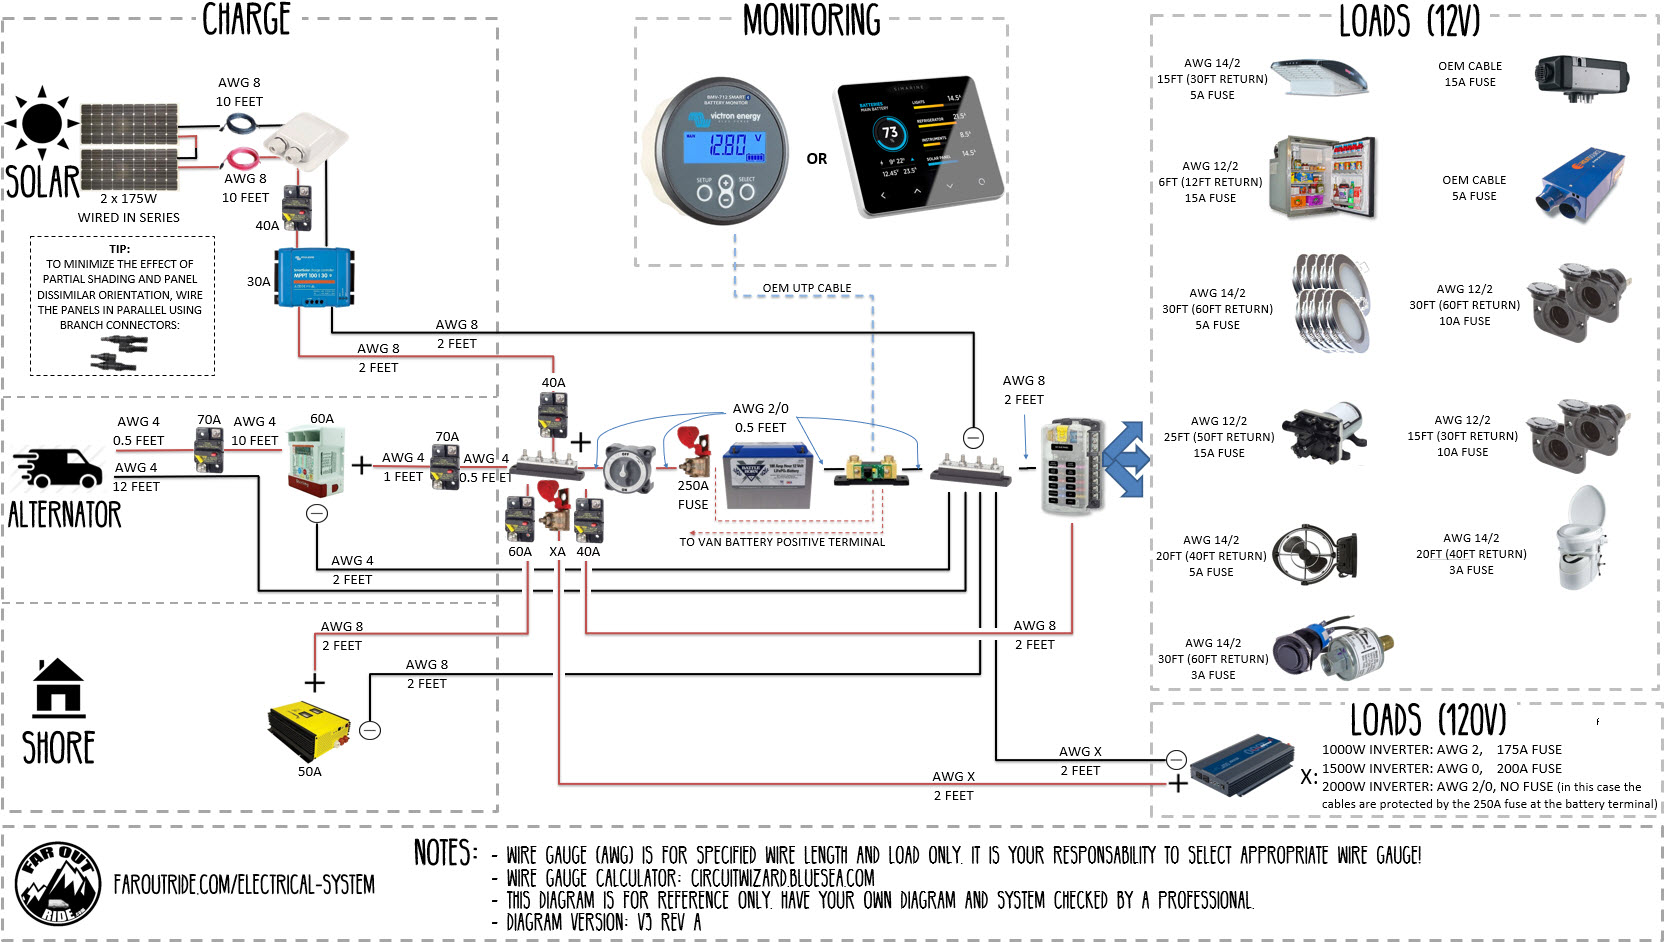 Interactive Wiring Diagram For Camper Van  Skoolie  Rv  Etc